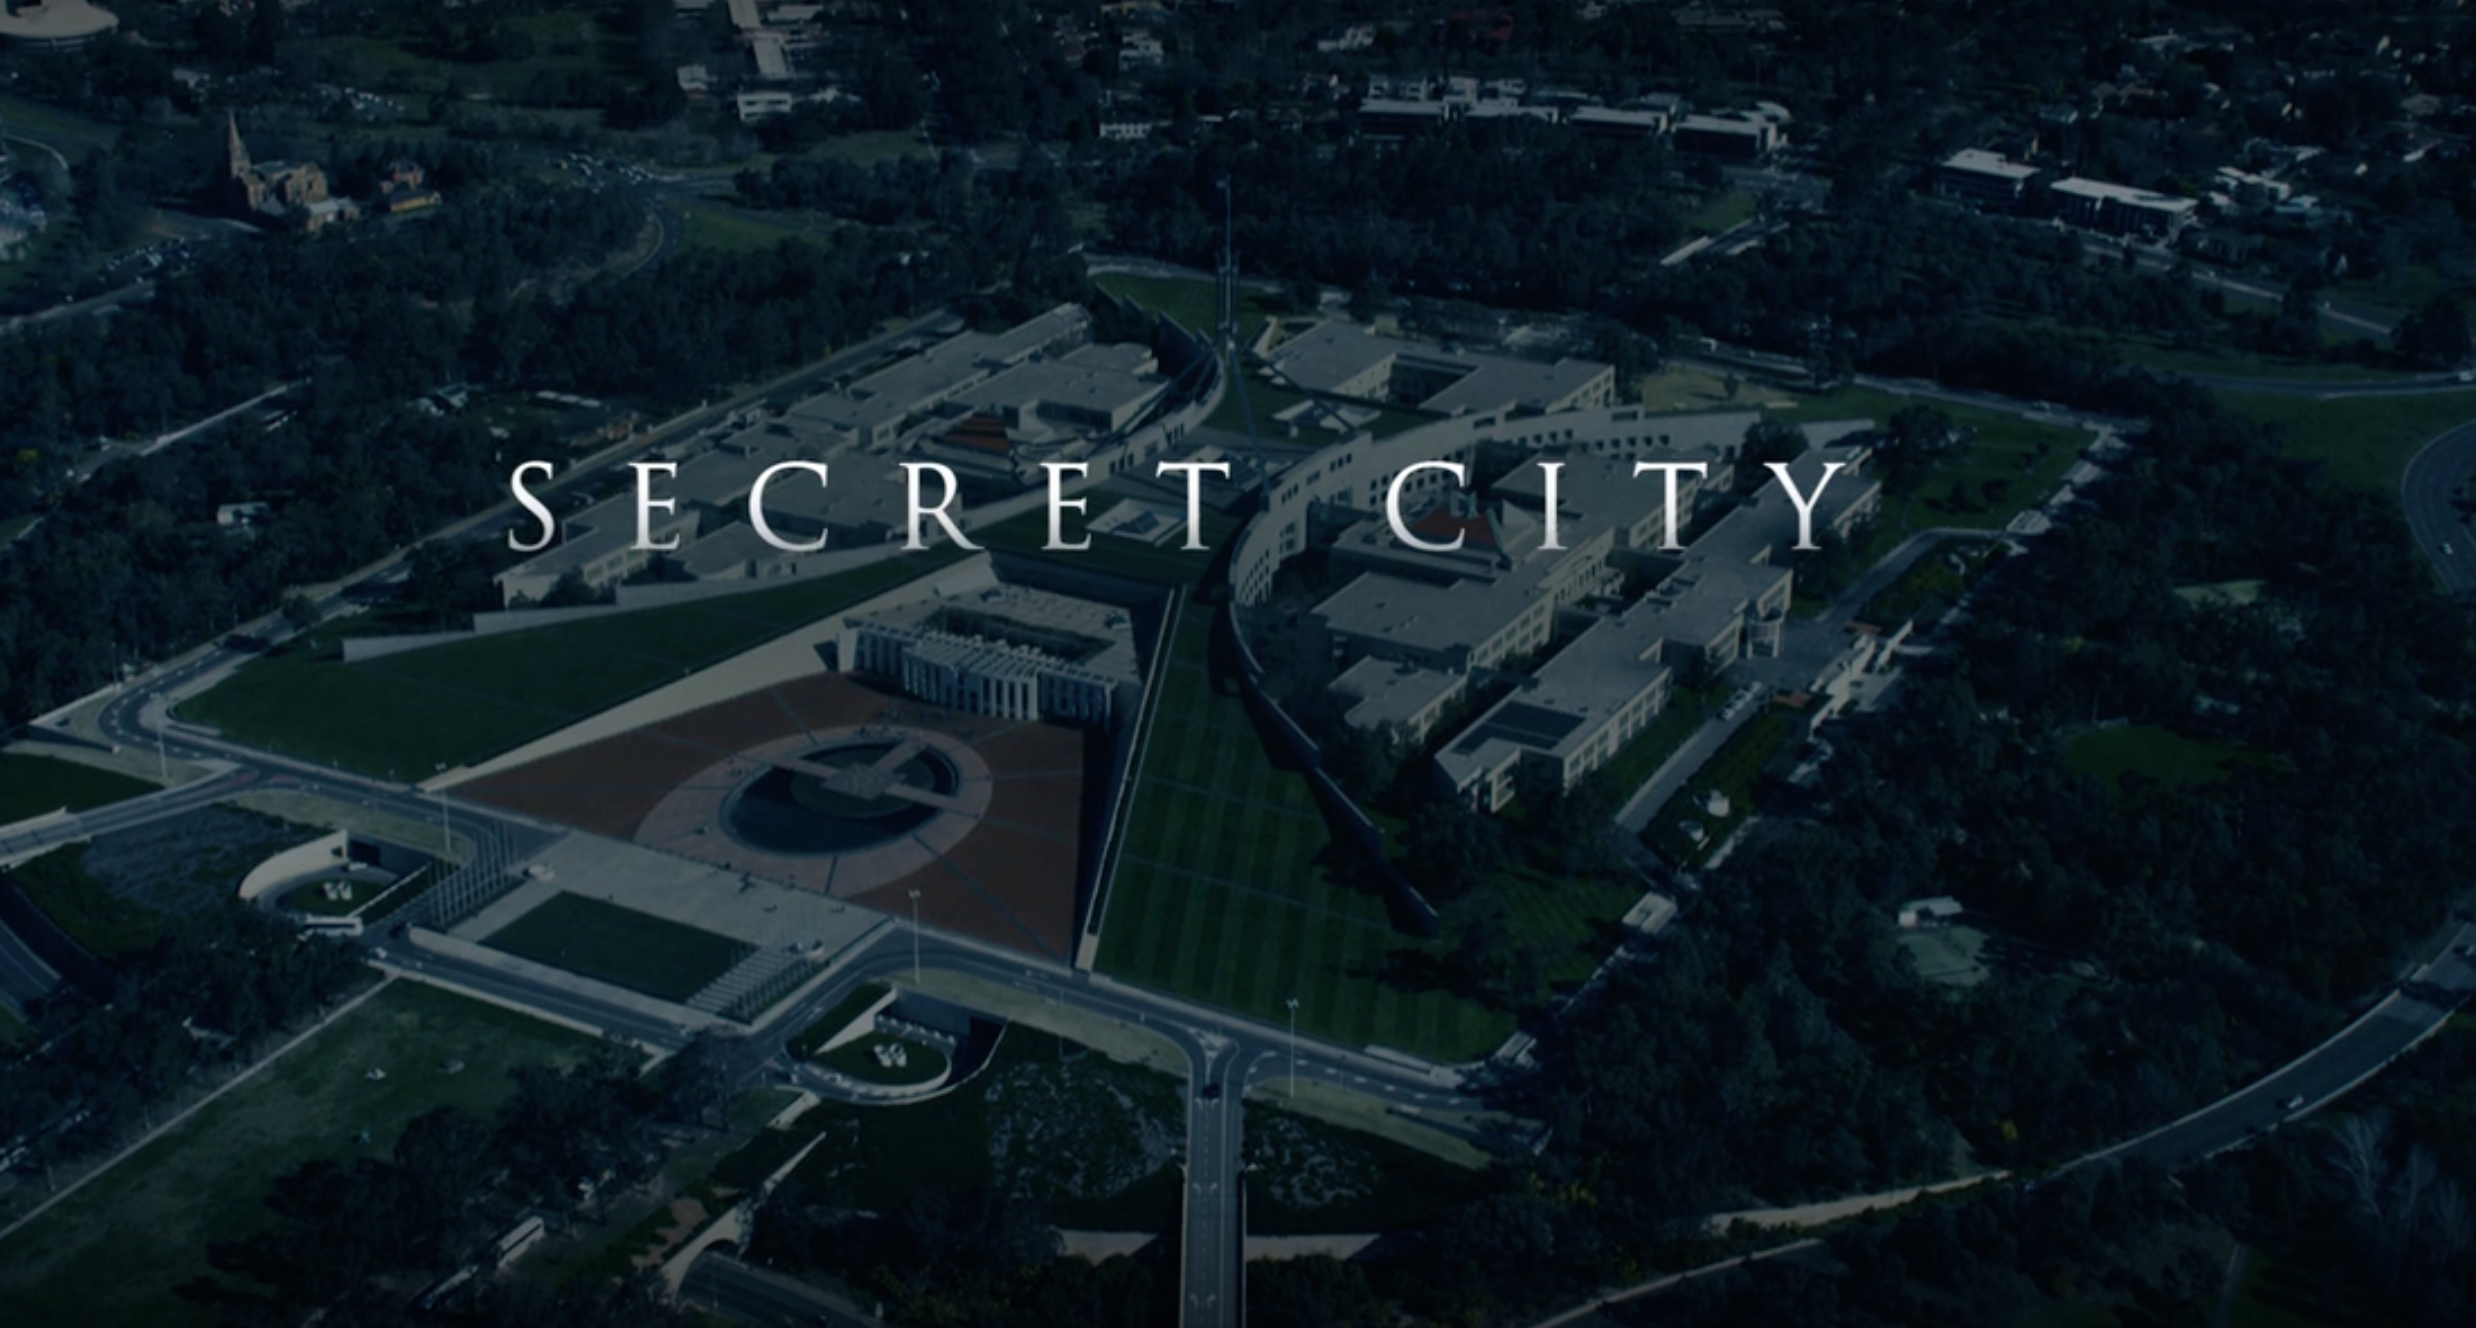 Screenshot from trailer of Secret City